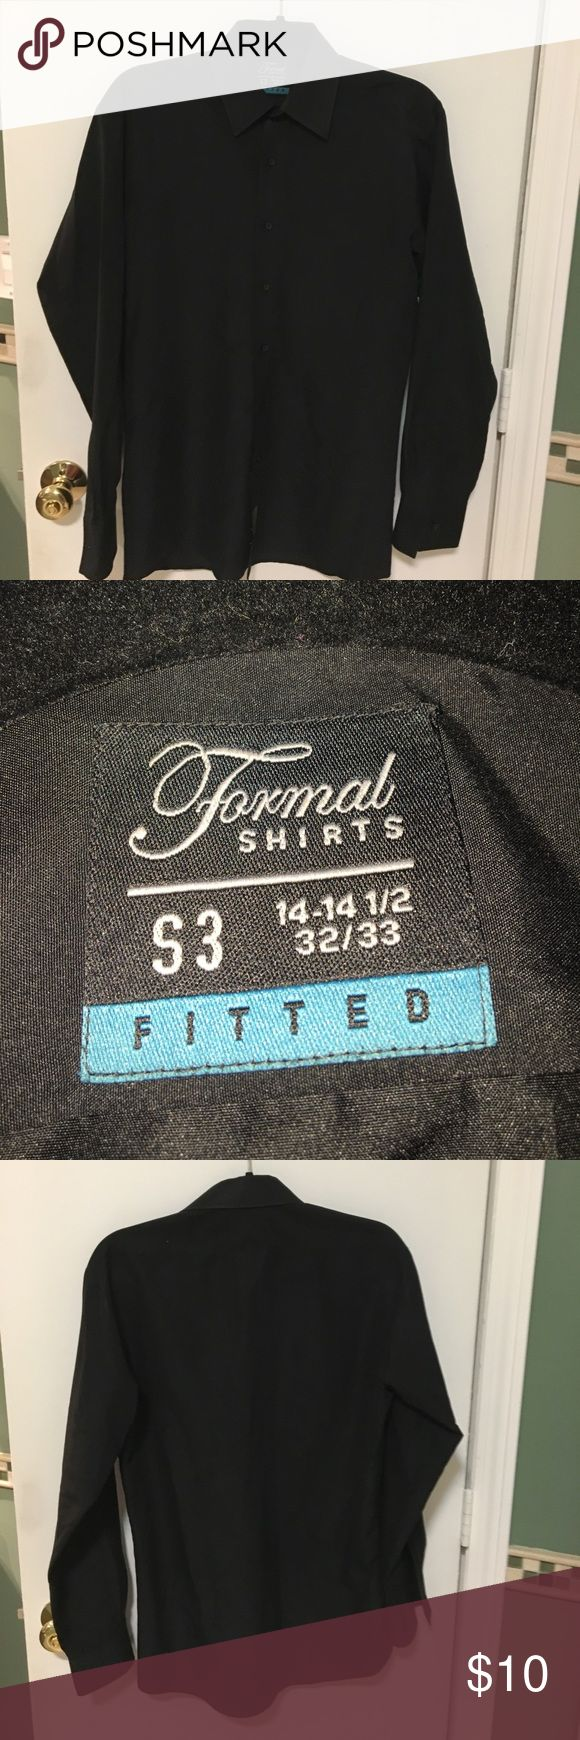 Formal Shirts - Black Tuxedo Shirt -Formal Shirts, Black tuxedo shirt - it can really be treated just as a dress shirt  -Fitted -100% Polyester  -Great condition - Pet and smoke-free home Formal Shirts Shirts Dress Shirts